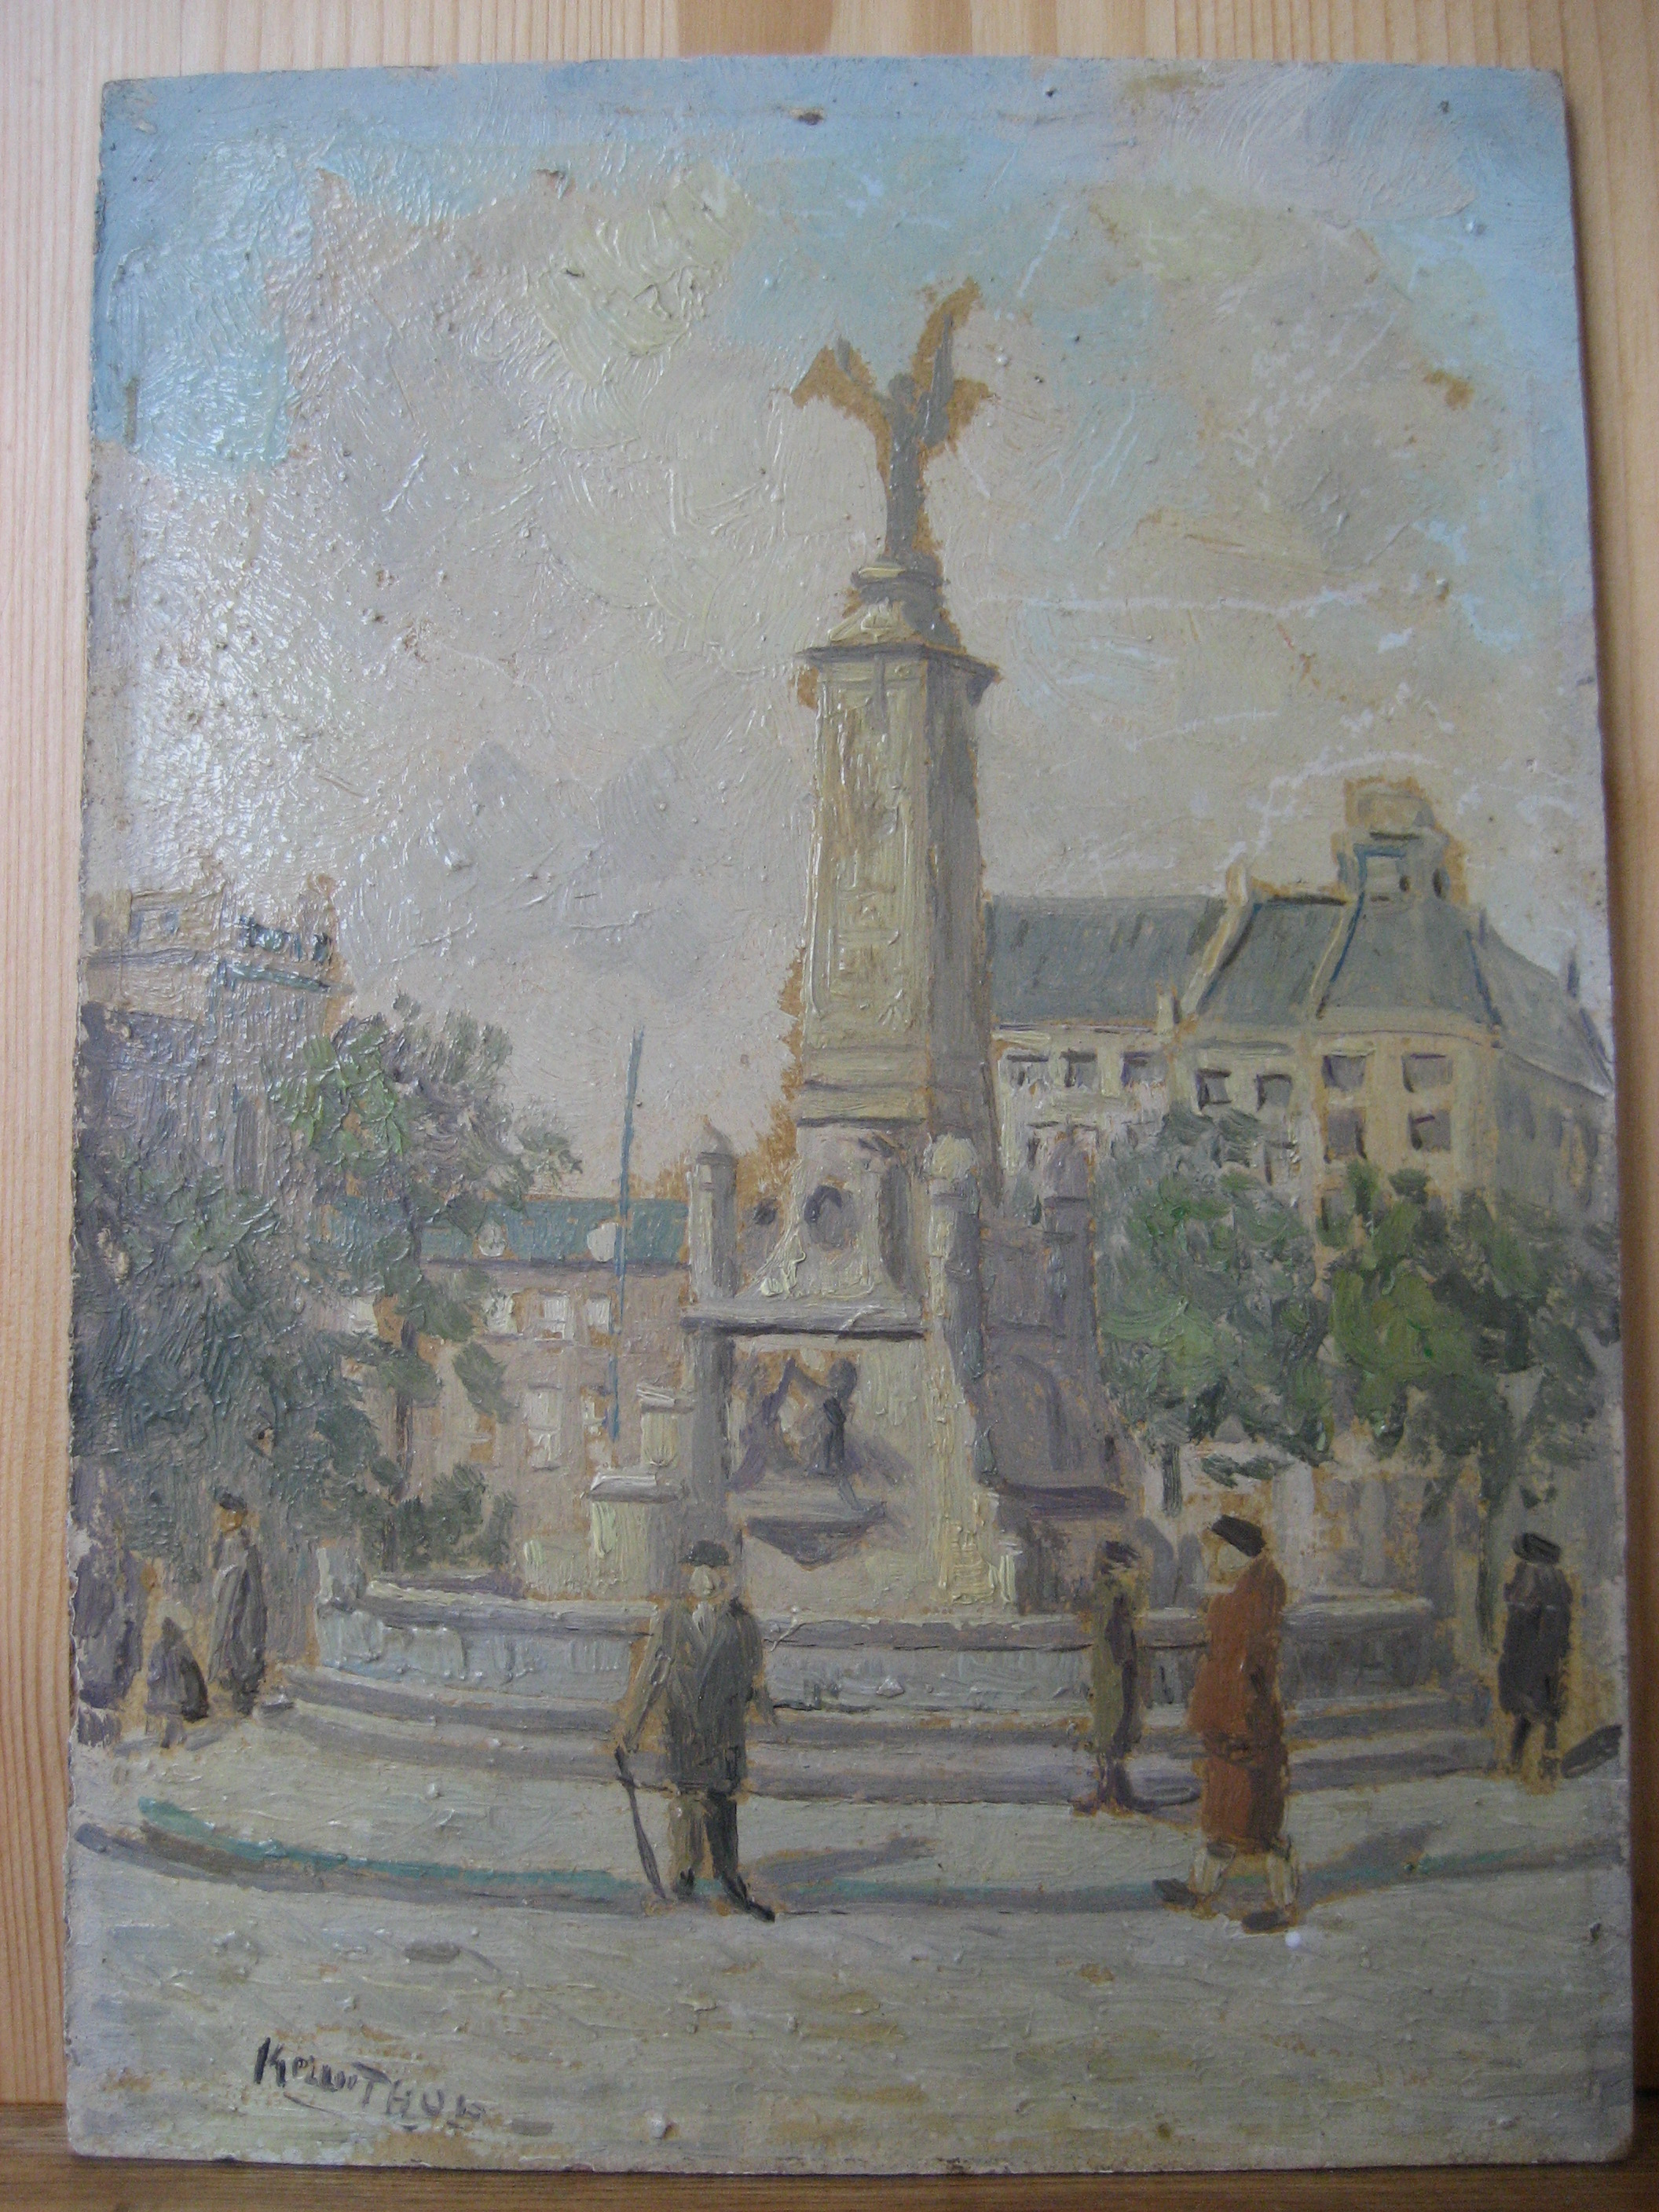 Antiquariaat Supplement, beeld & boekwerken, Caland monument